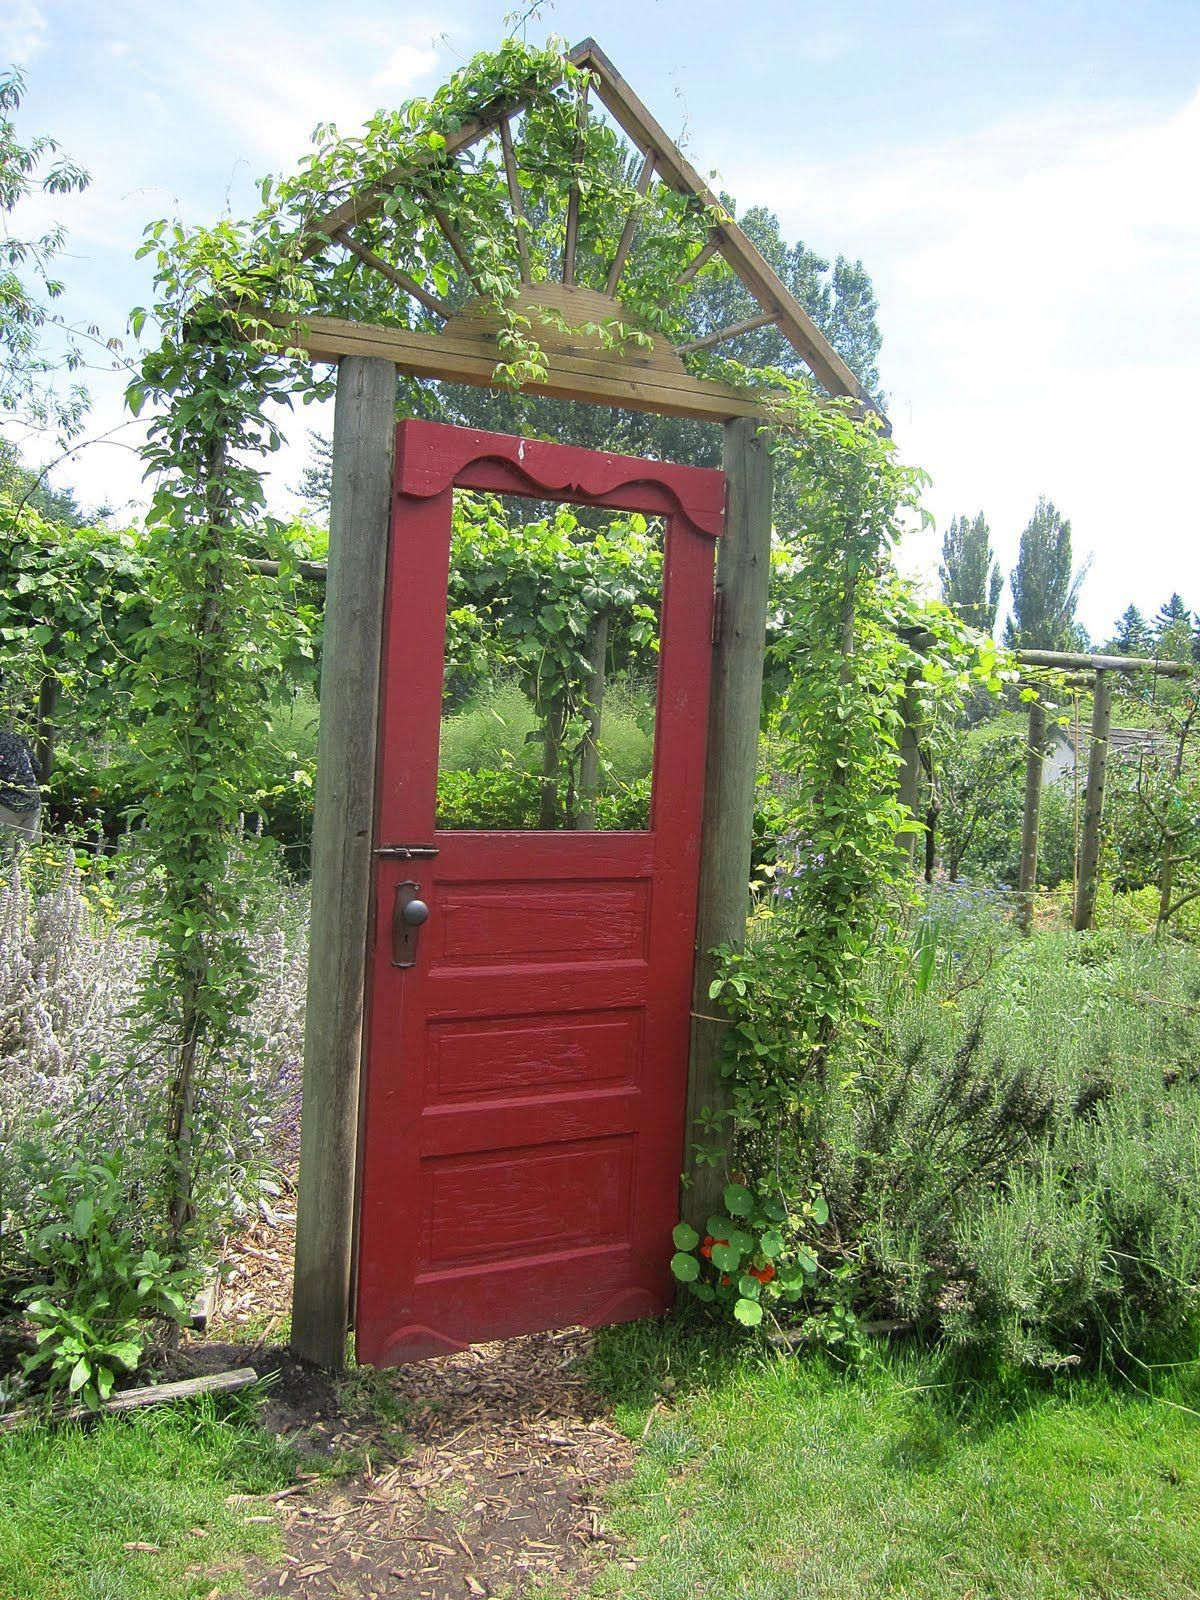 Love the idea of a door as a garden gate gardengate garden